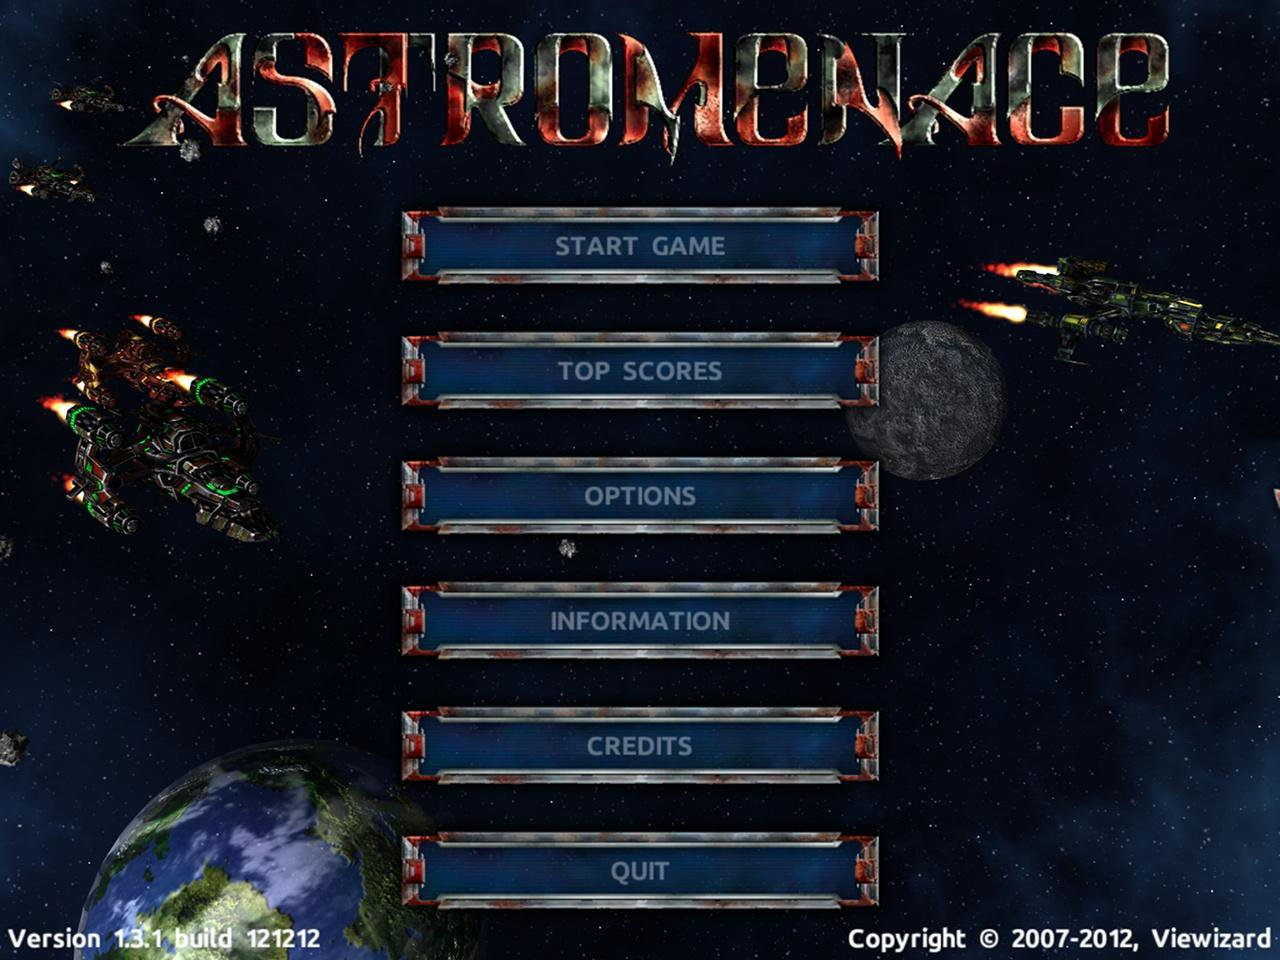 Download web tool or web app AstroMenace to run in Windows online over Linux online